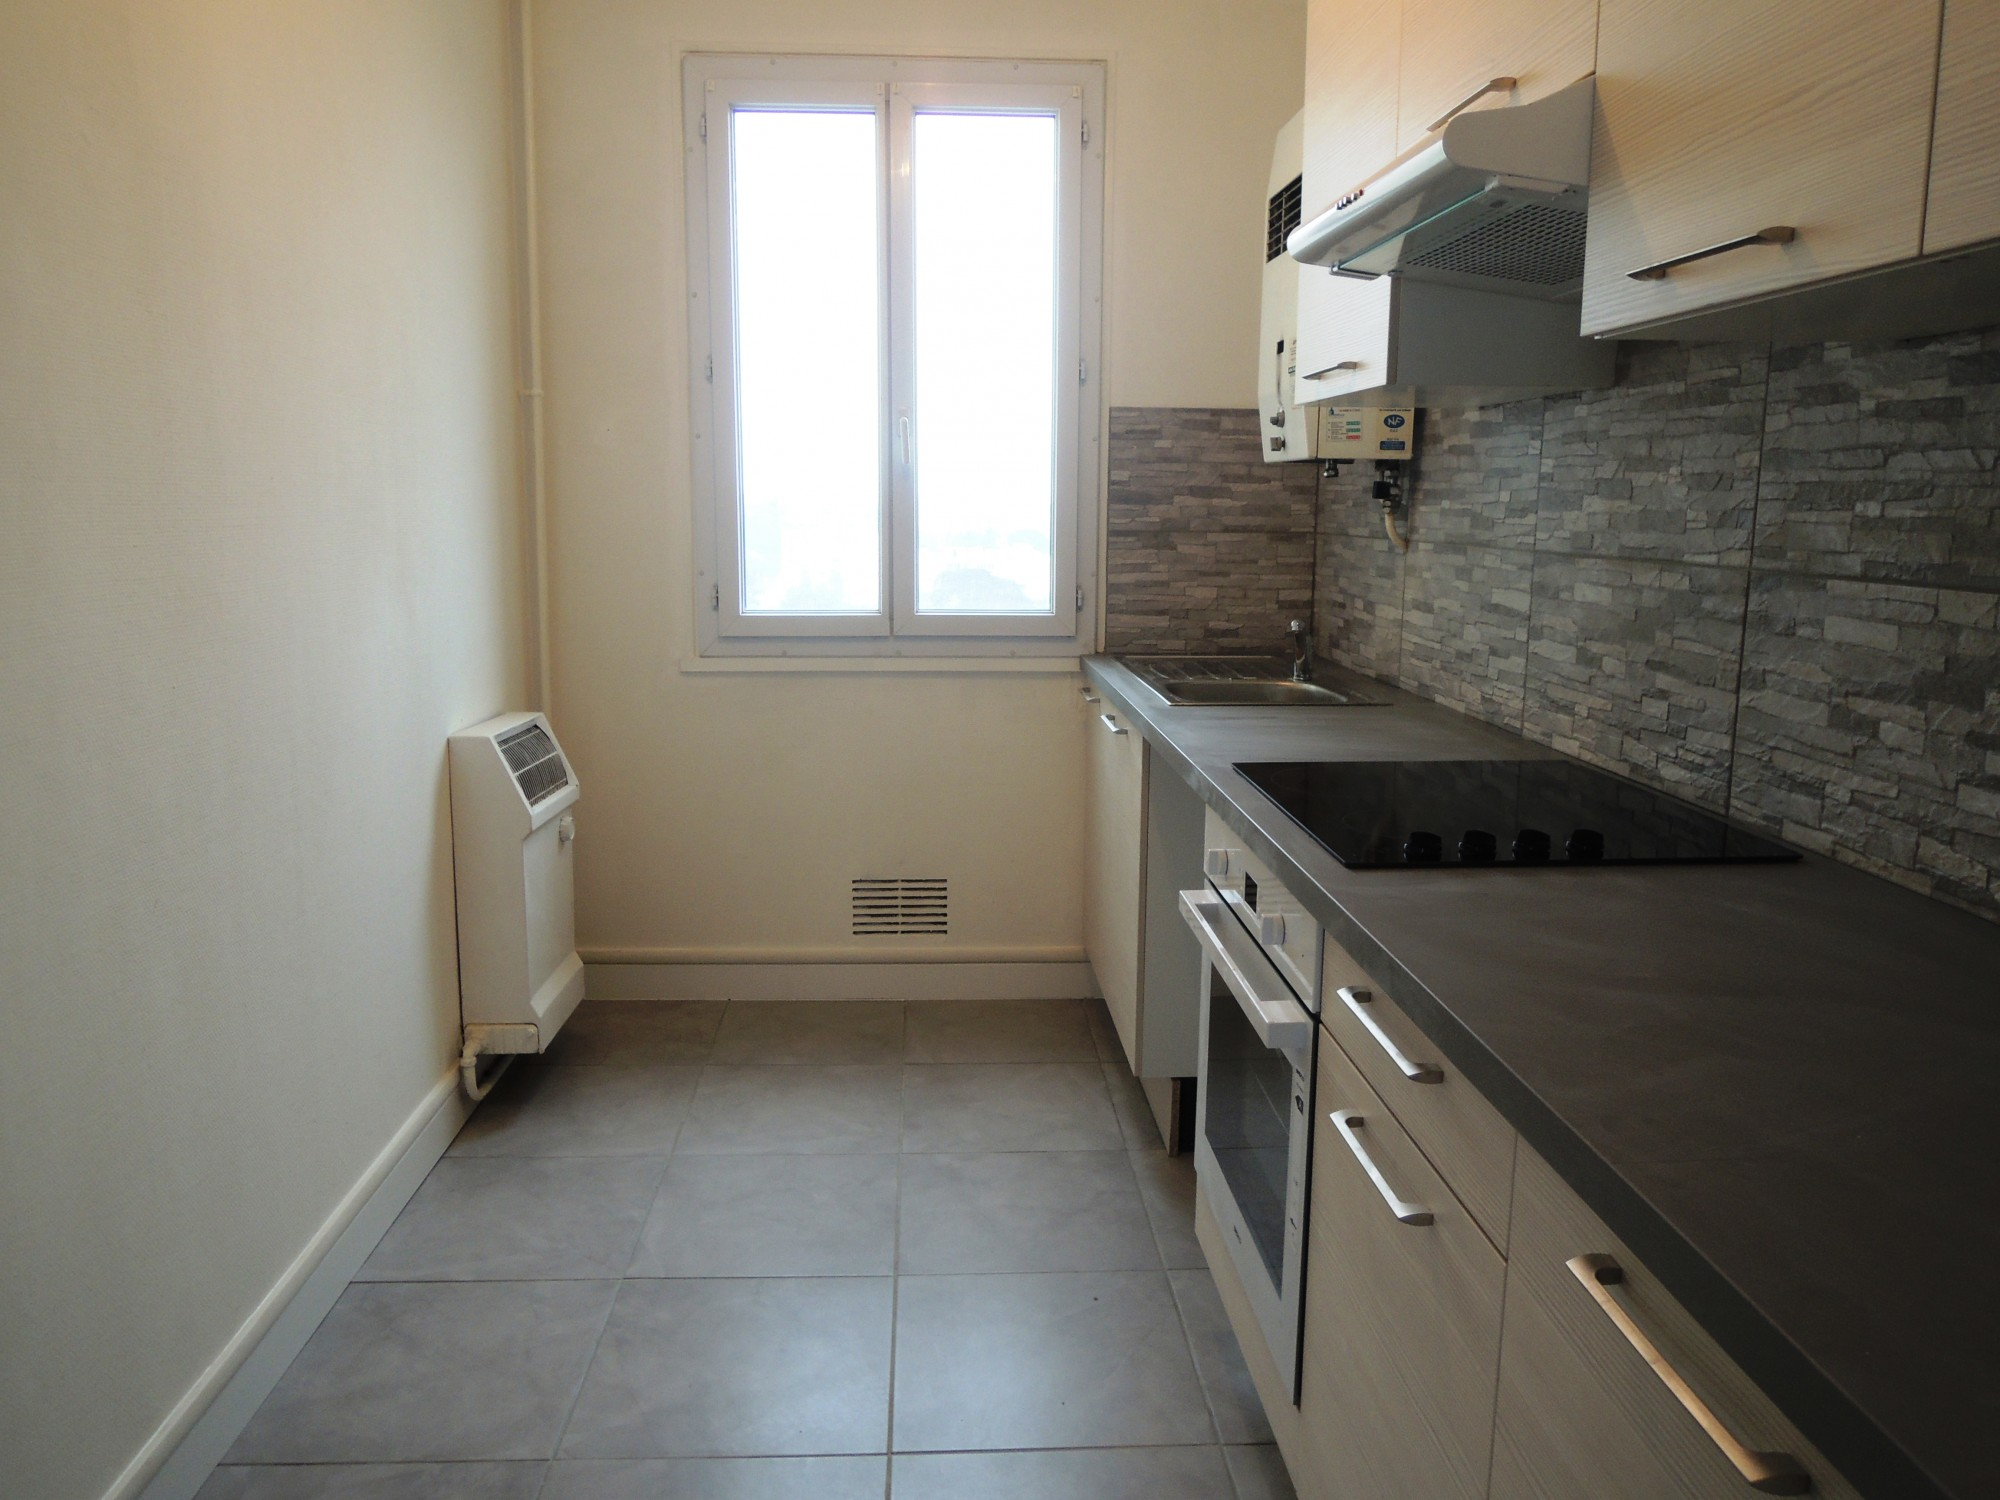 Location appartement t3 f3 bordeaux cauderan bru immobilier for Location appartement cub bordeaux